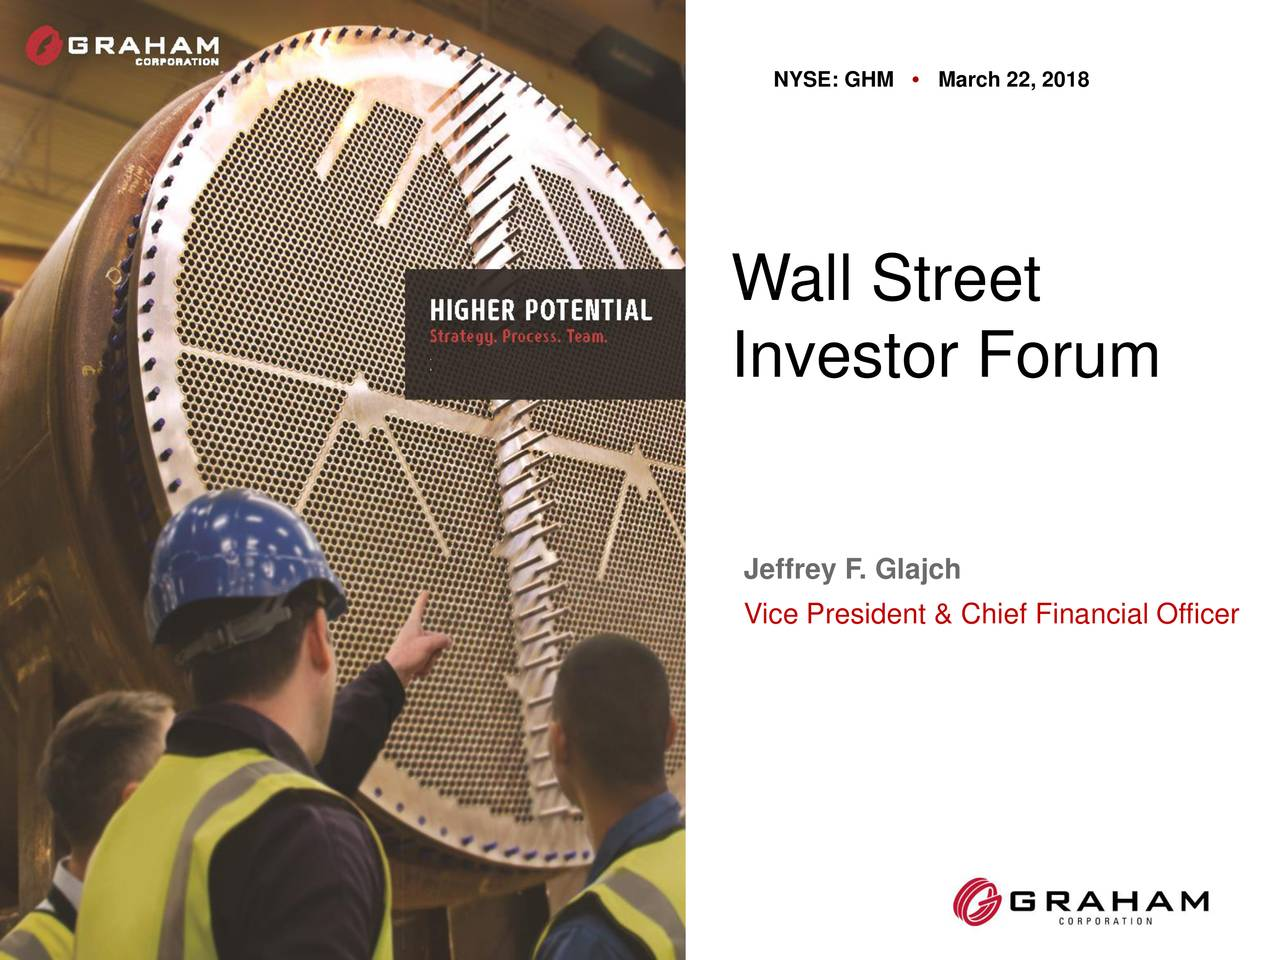 Graham Corporation (GHM) Presents At The Wall Street